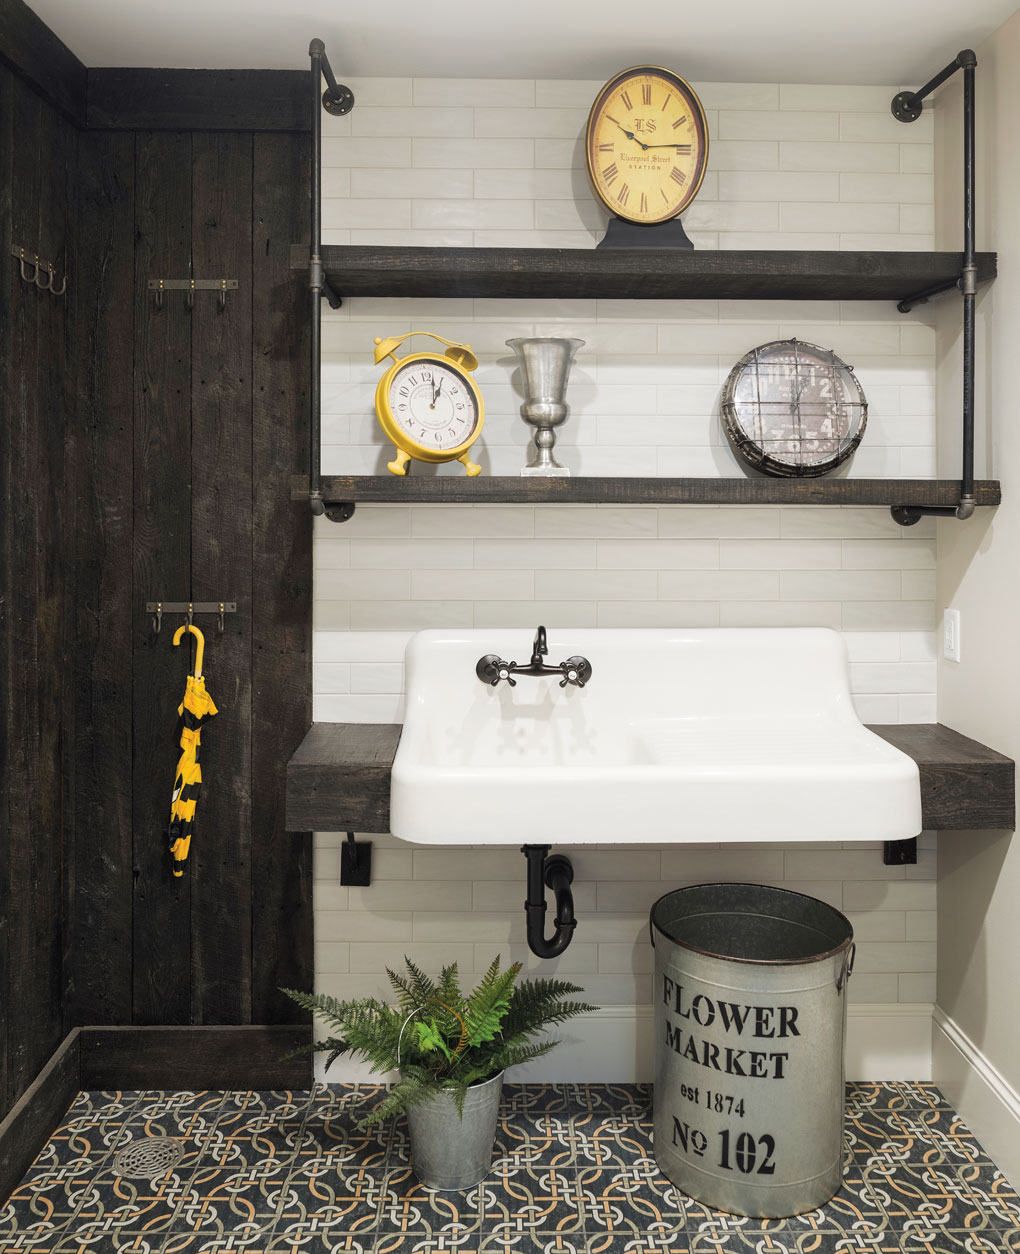 A mudroom with three clocks adorning the shelves above a large sink. An umbrella hangs on a nearby wall.